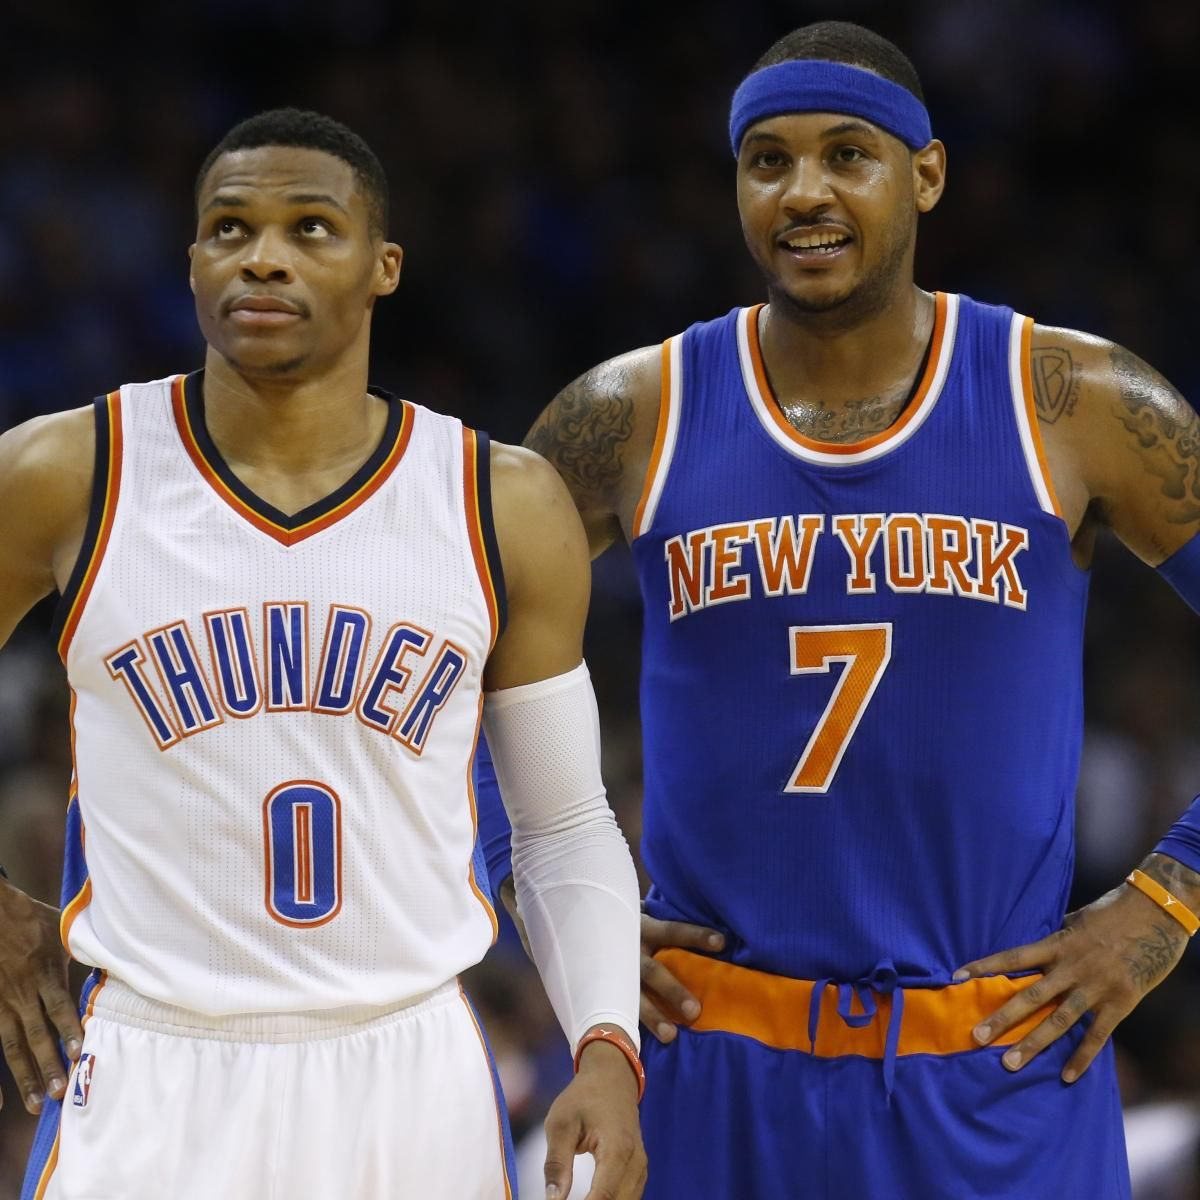 OKC's Big 3 Suddenly Has Fighter's Chance Against Western Conference Elites - Bleacher Report